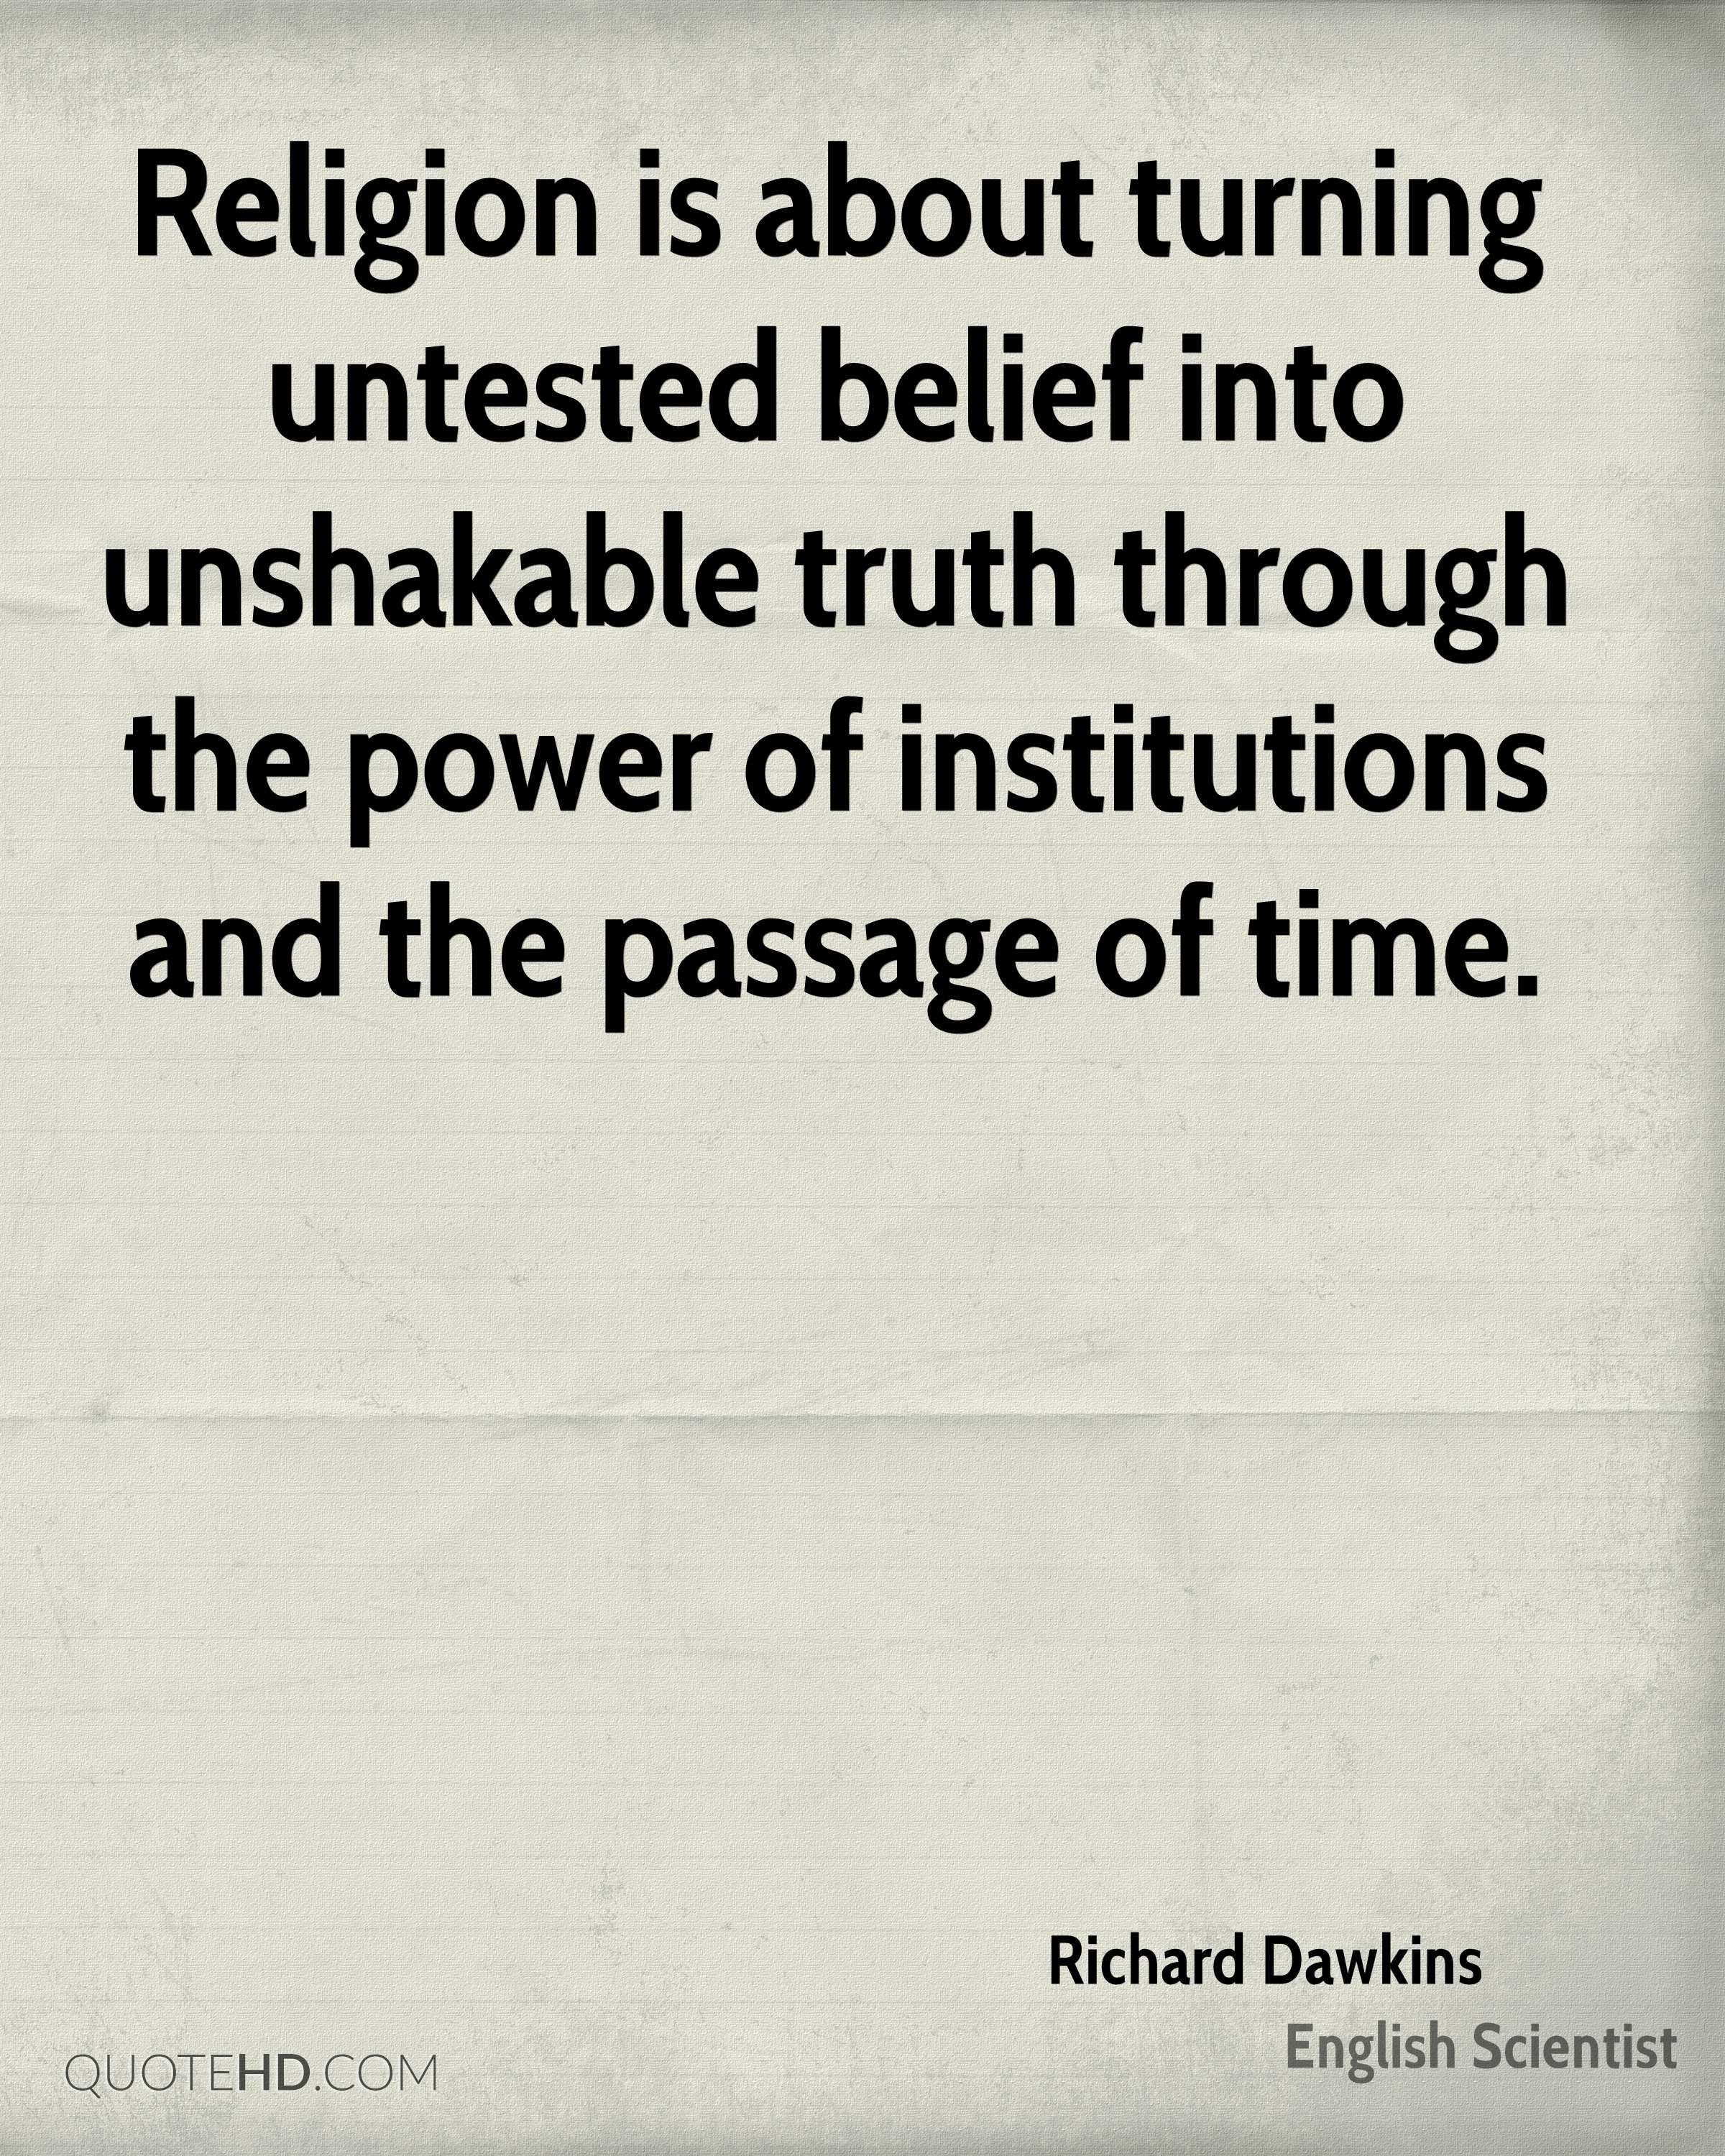 Religion is about turning untested belief into unshakable truth through the power of institutions and the passage of time.